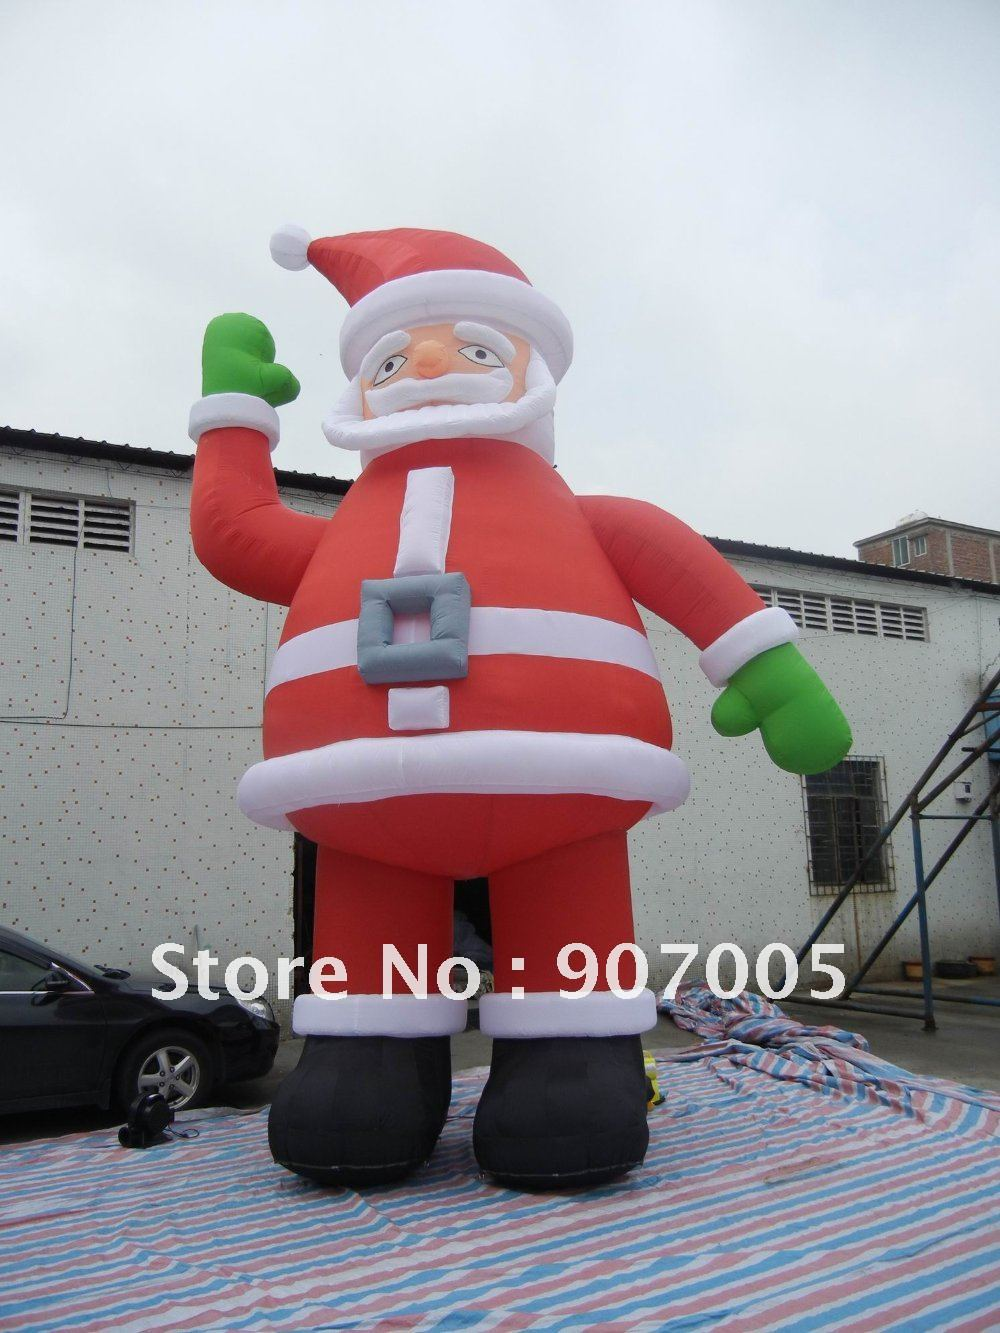 Inflatable christmas decorations outdoor cheap - 10mh 33 Good Quality Street Park Yard Inflatable Christmas Decoration Inflatable Christmas Santa